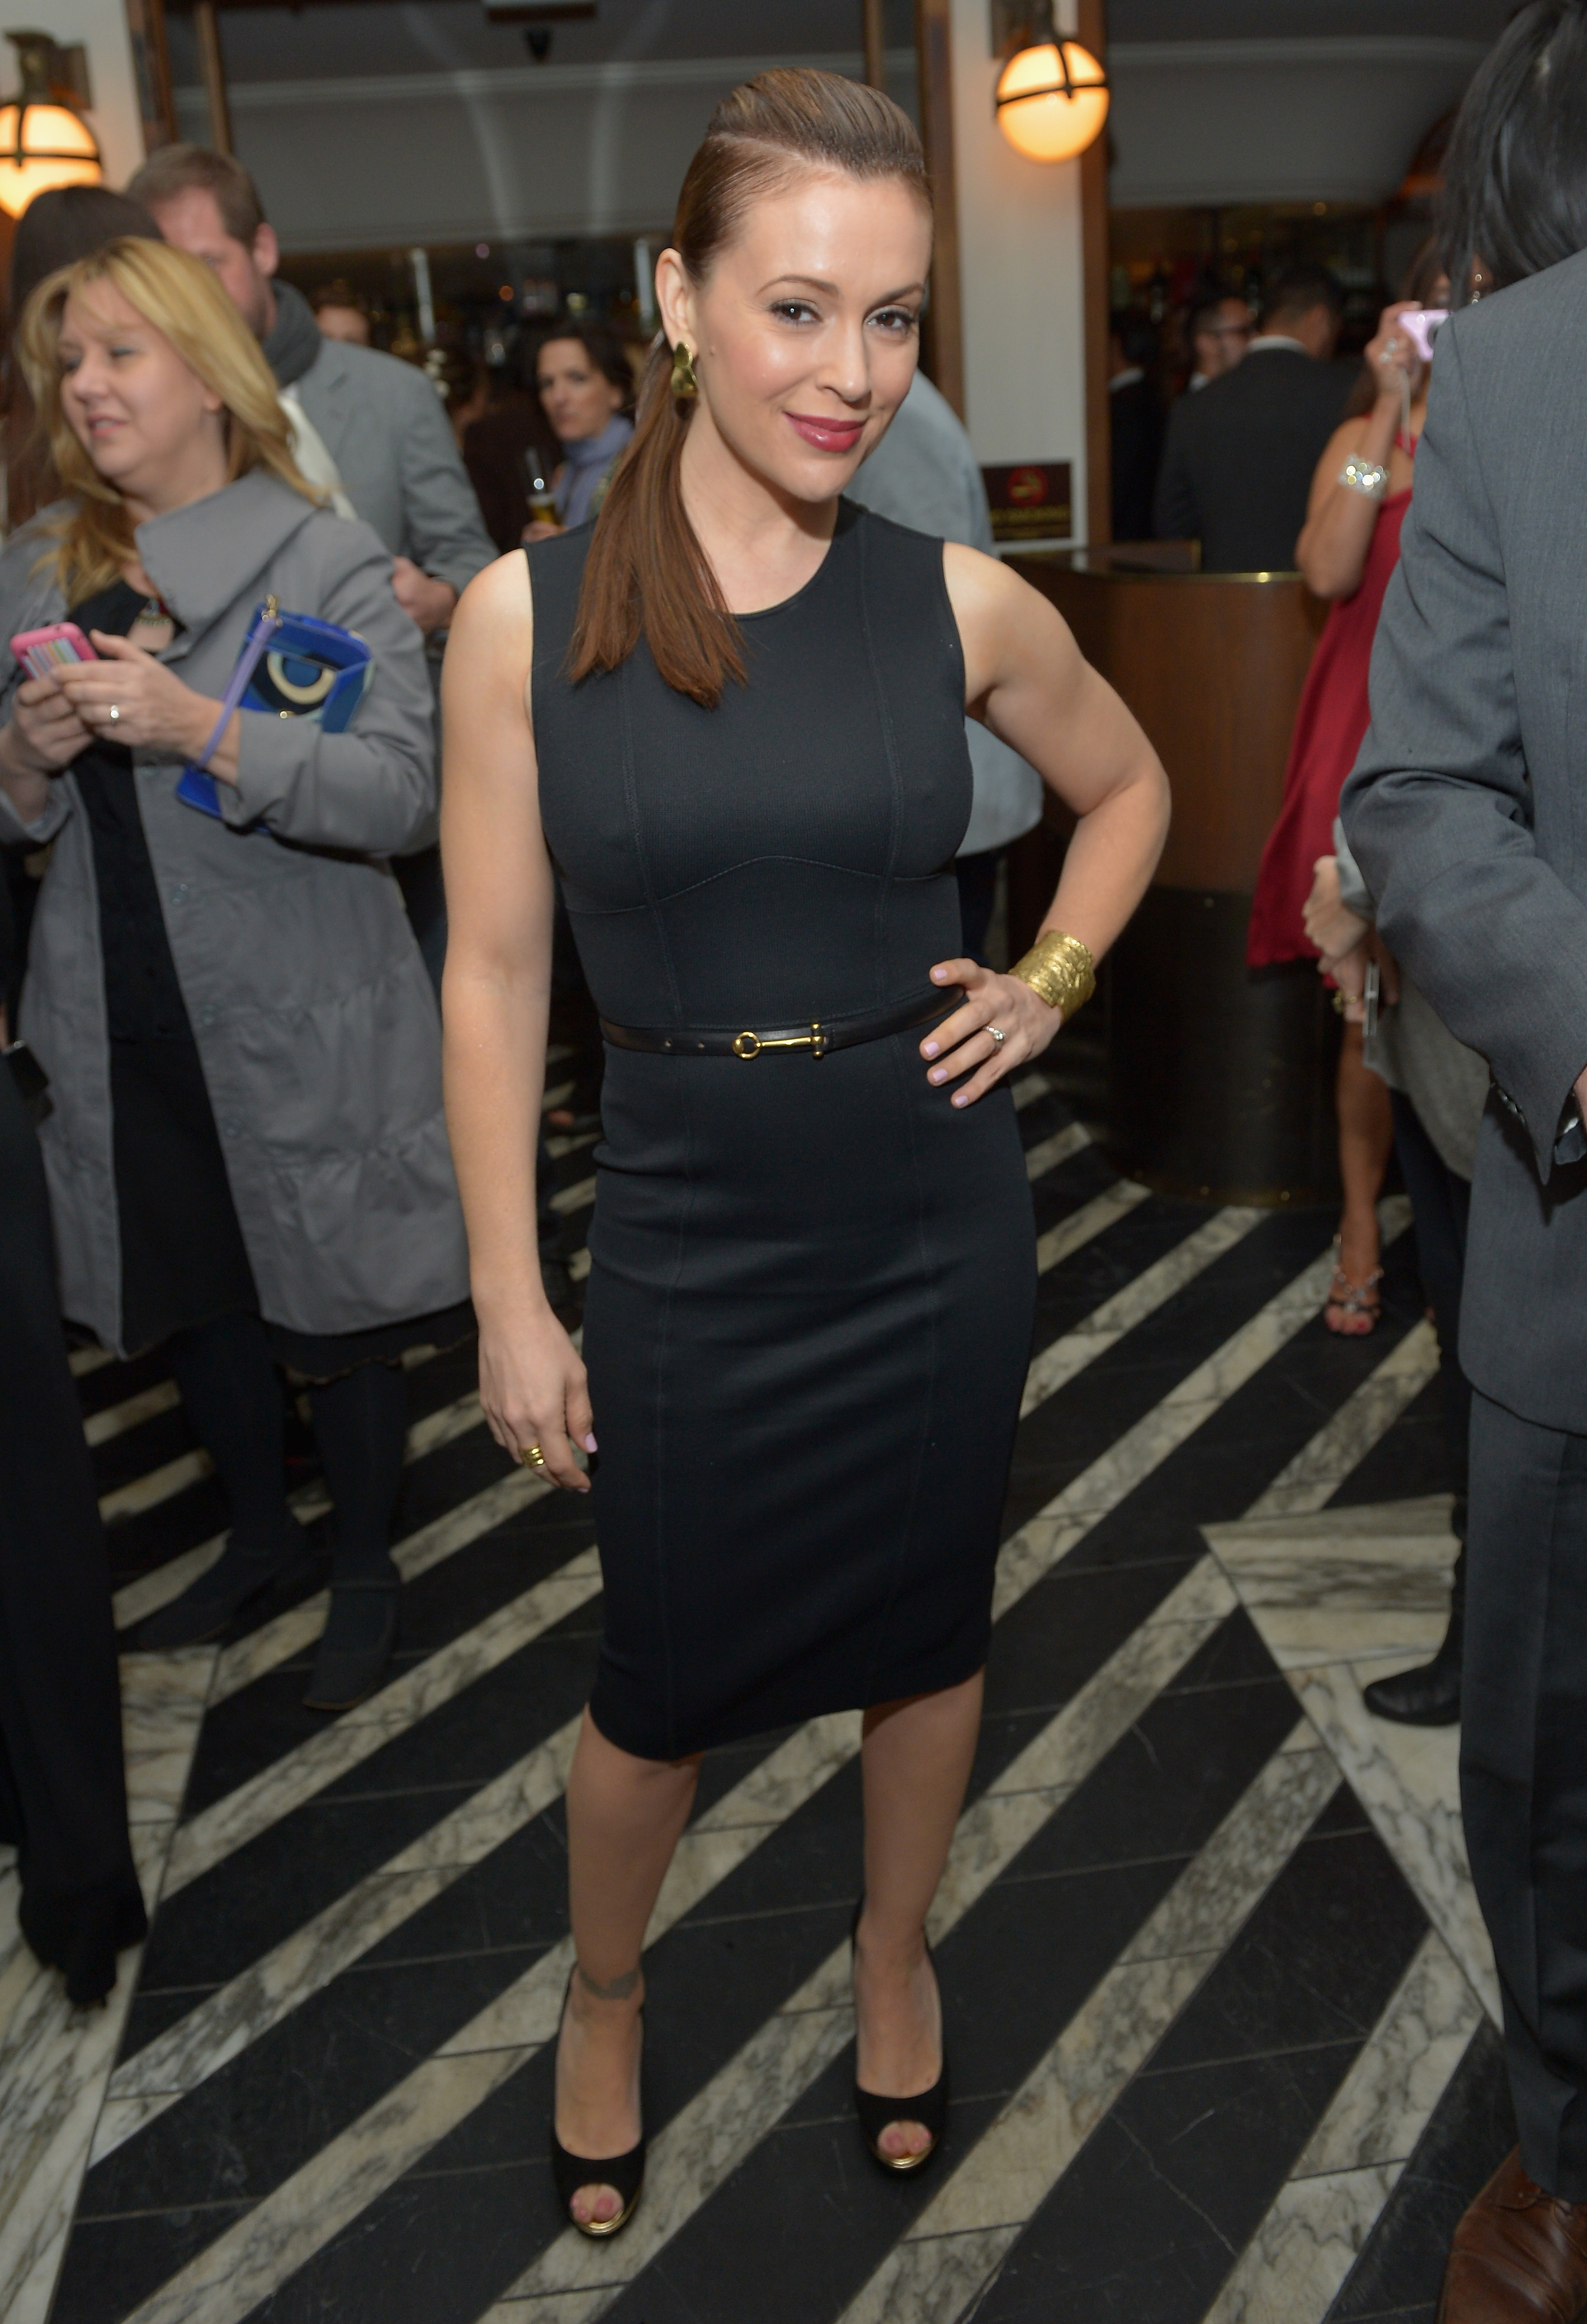 Alyssa Milano wore an LBD to a pre-Oscars party held by Vanity Fair on Thursday night in LA.